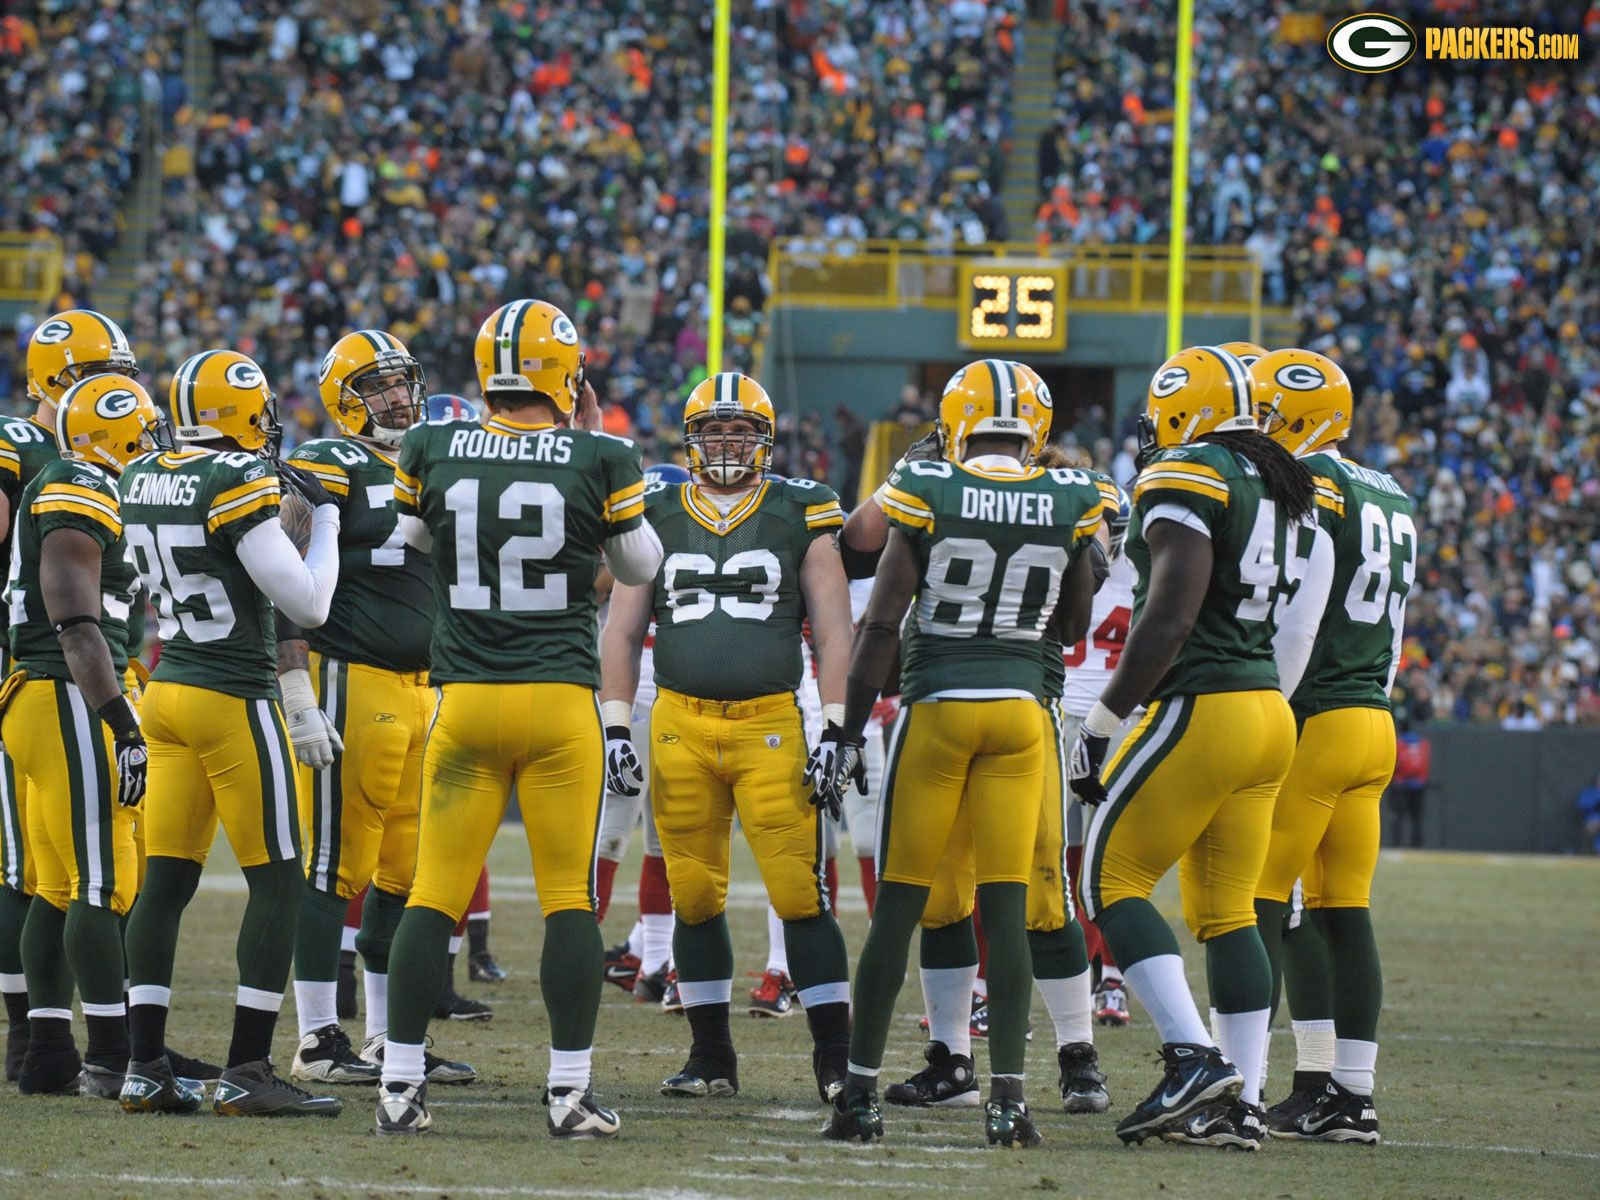 Green Bay Packers Clip Art Green Bay Packers 1 Green Bay Packers 2 Green Bay Packers 3 Nfl Green Bay Green Bay Packers Wallpaper Green Bay Packers